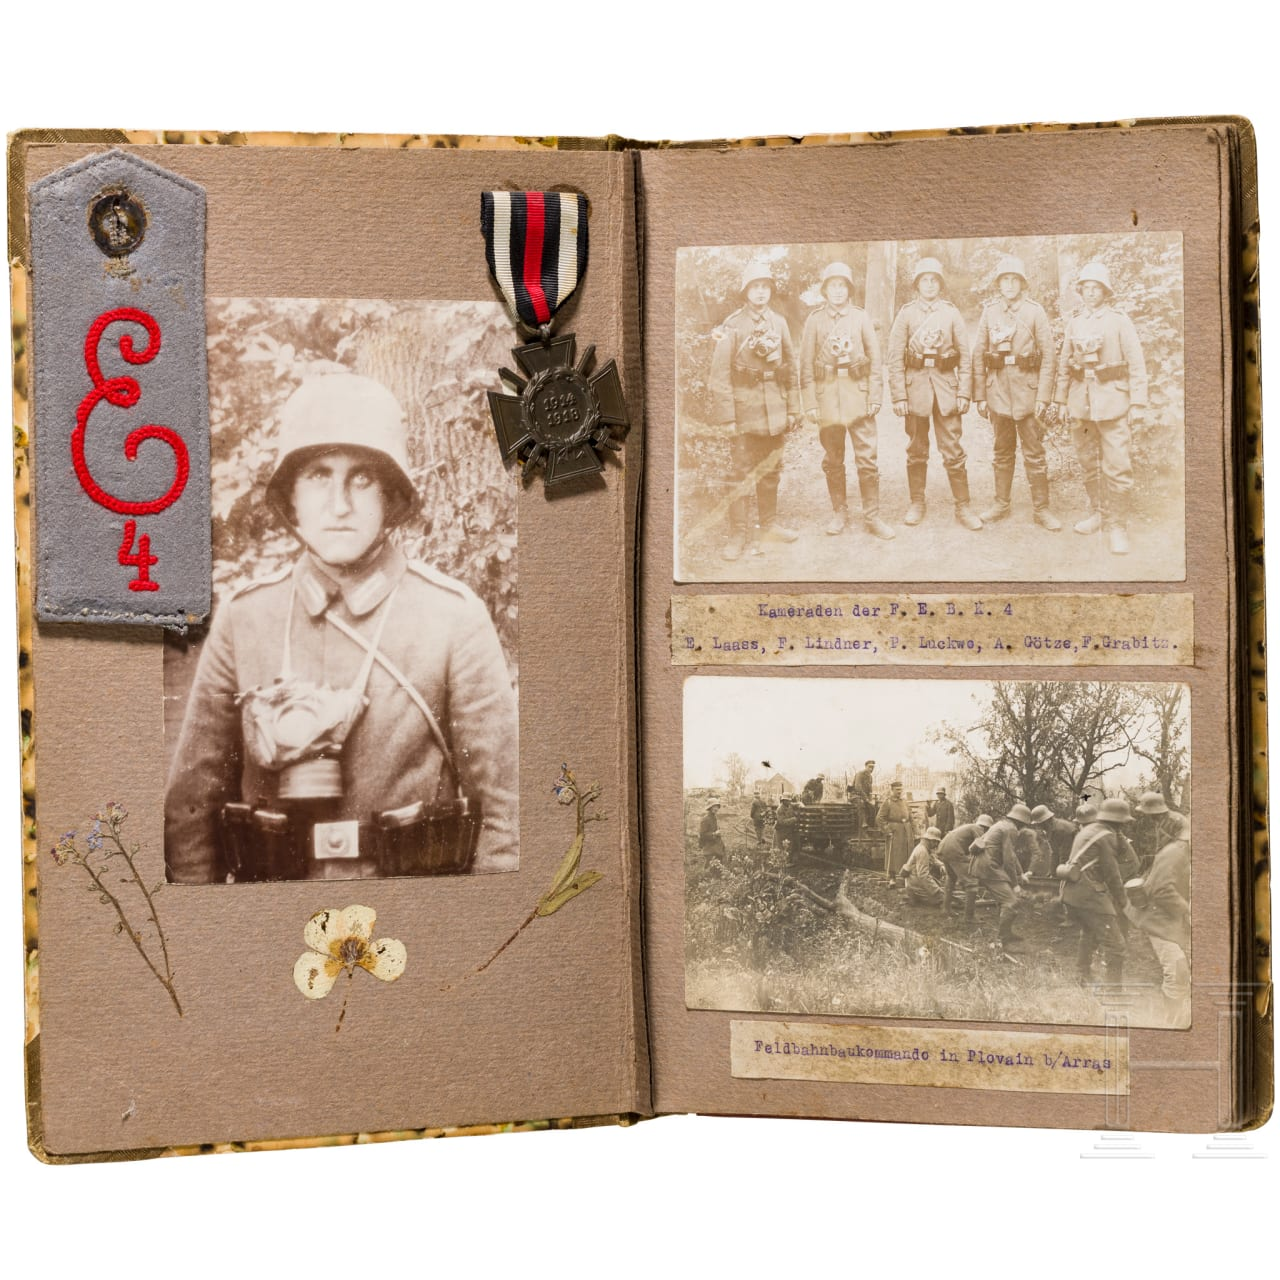 Memorial album of a pioneer of the Fortress Railway Construction Company 4